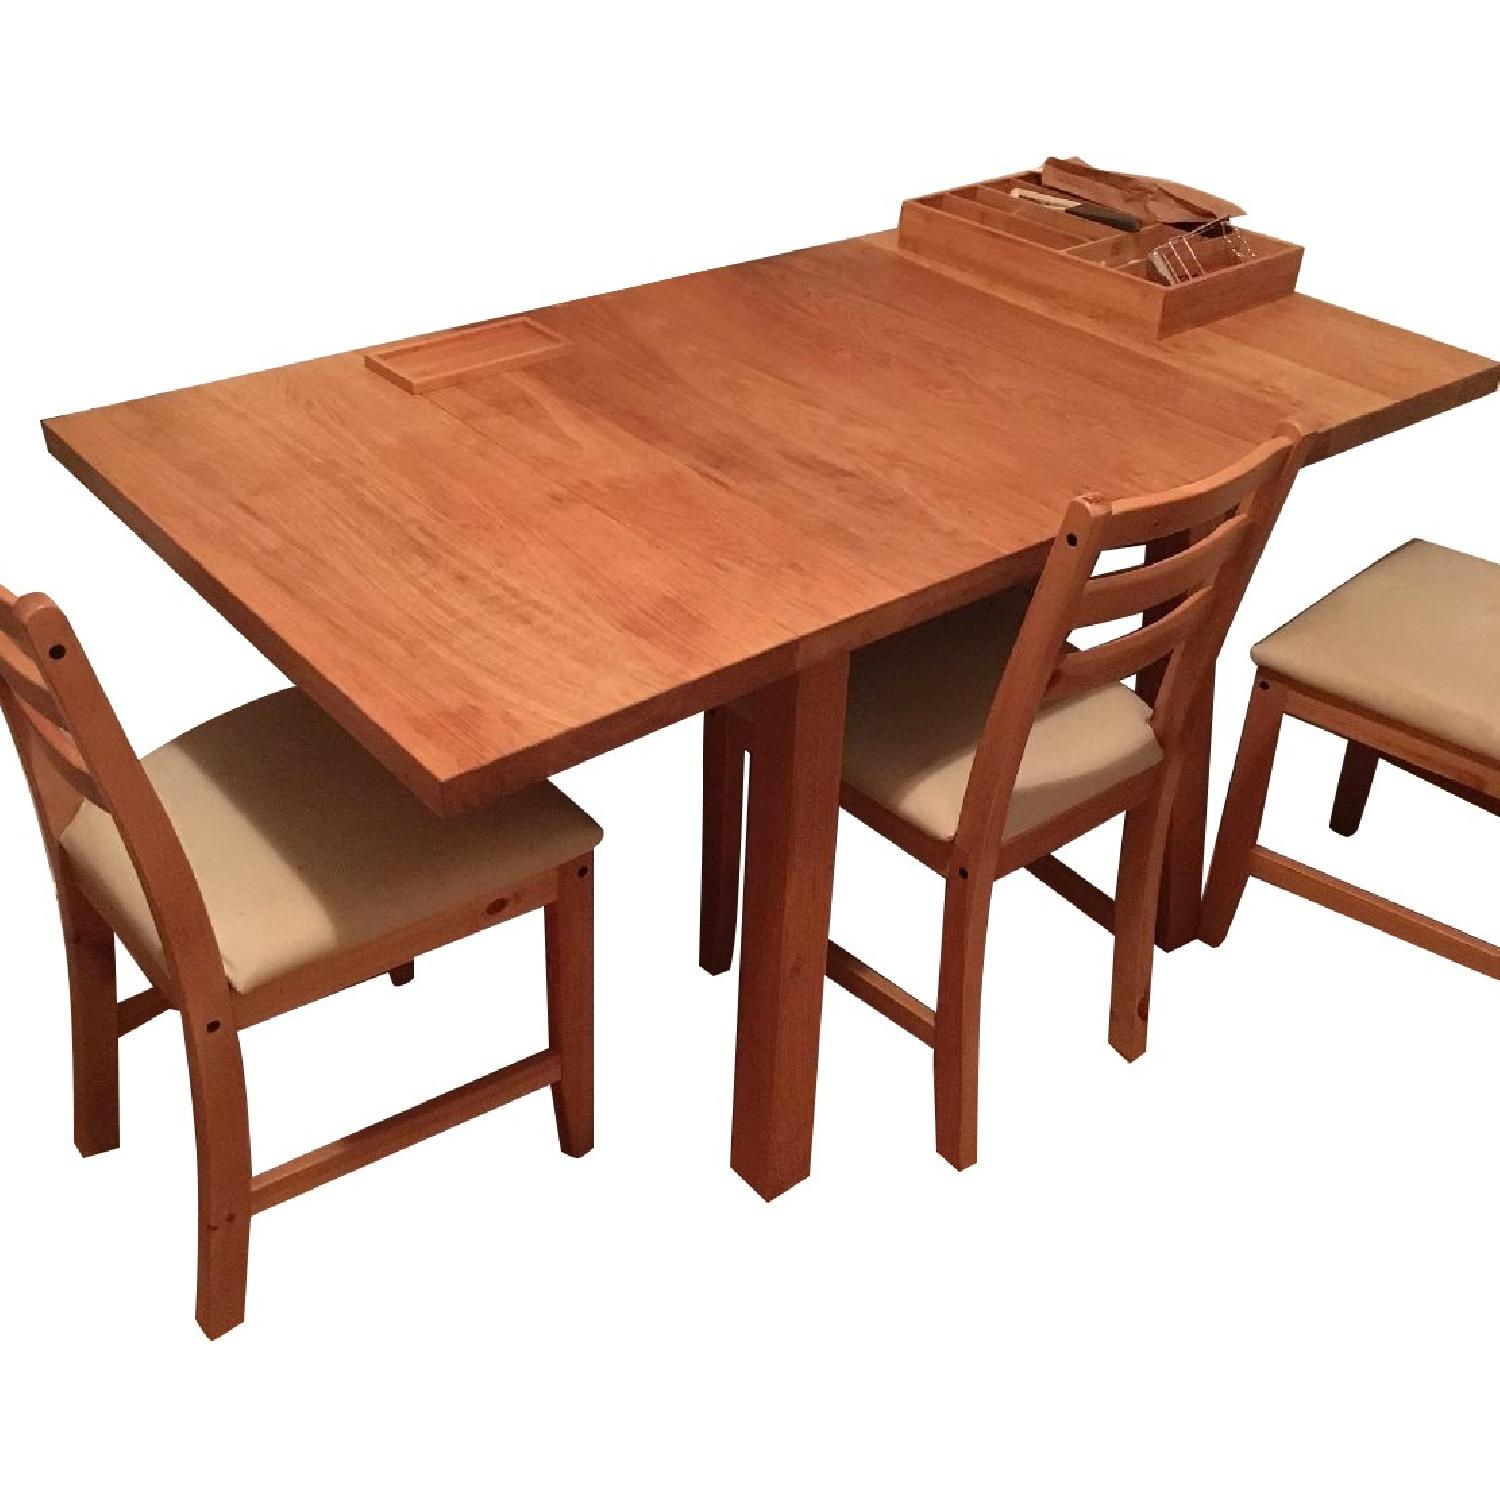 Ikea Solid Oak Wood Drop Leaf Dining Table W/ 4 Chairs ...